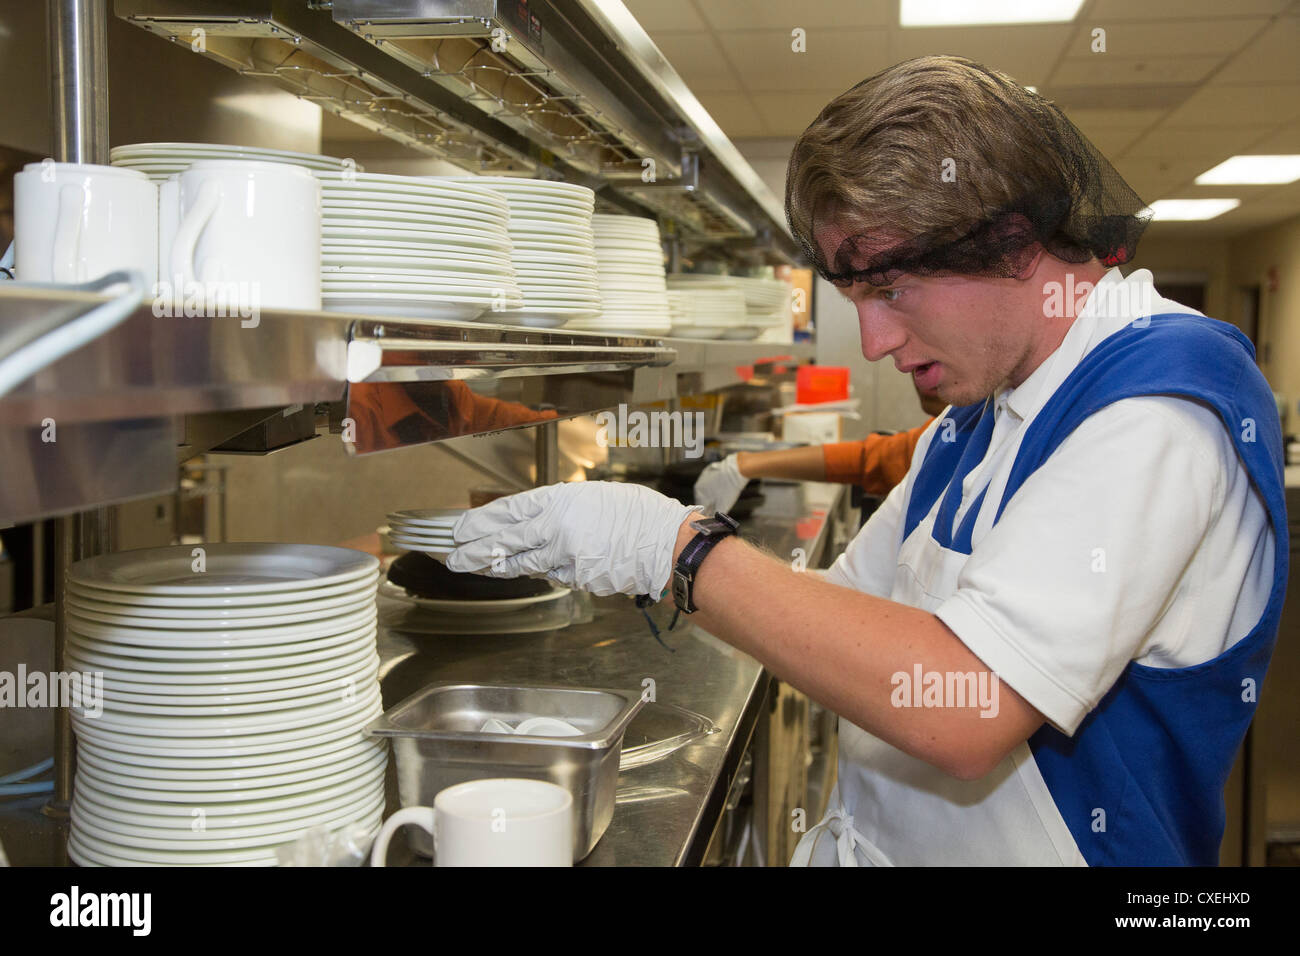 Clean Dishes Stock Photos & Clean Dishes Stock Images - Alamy